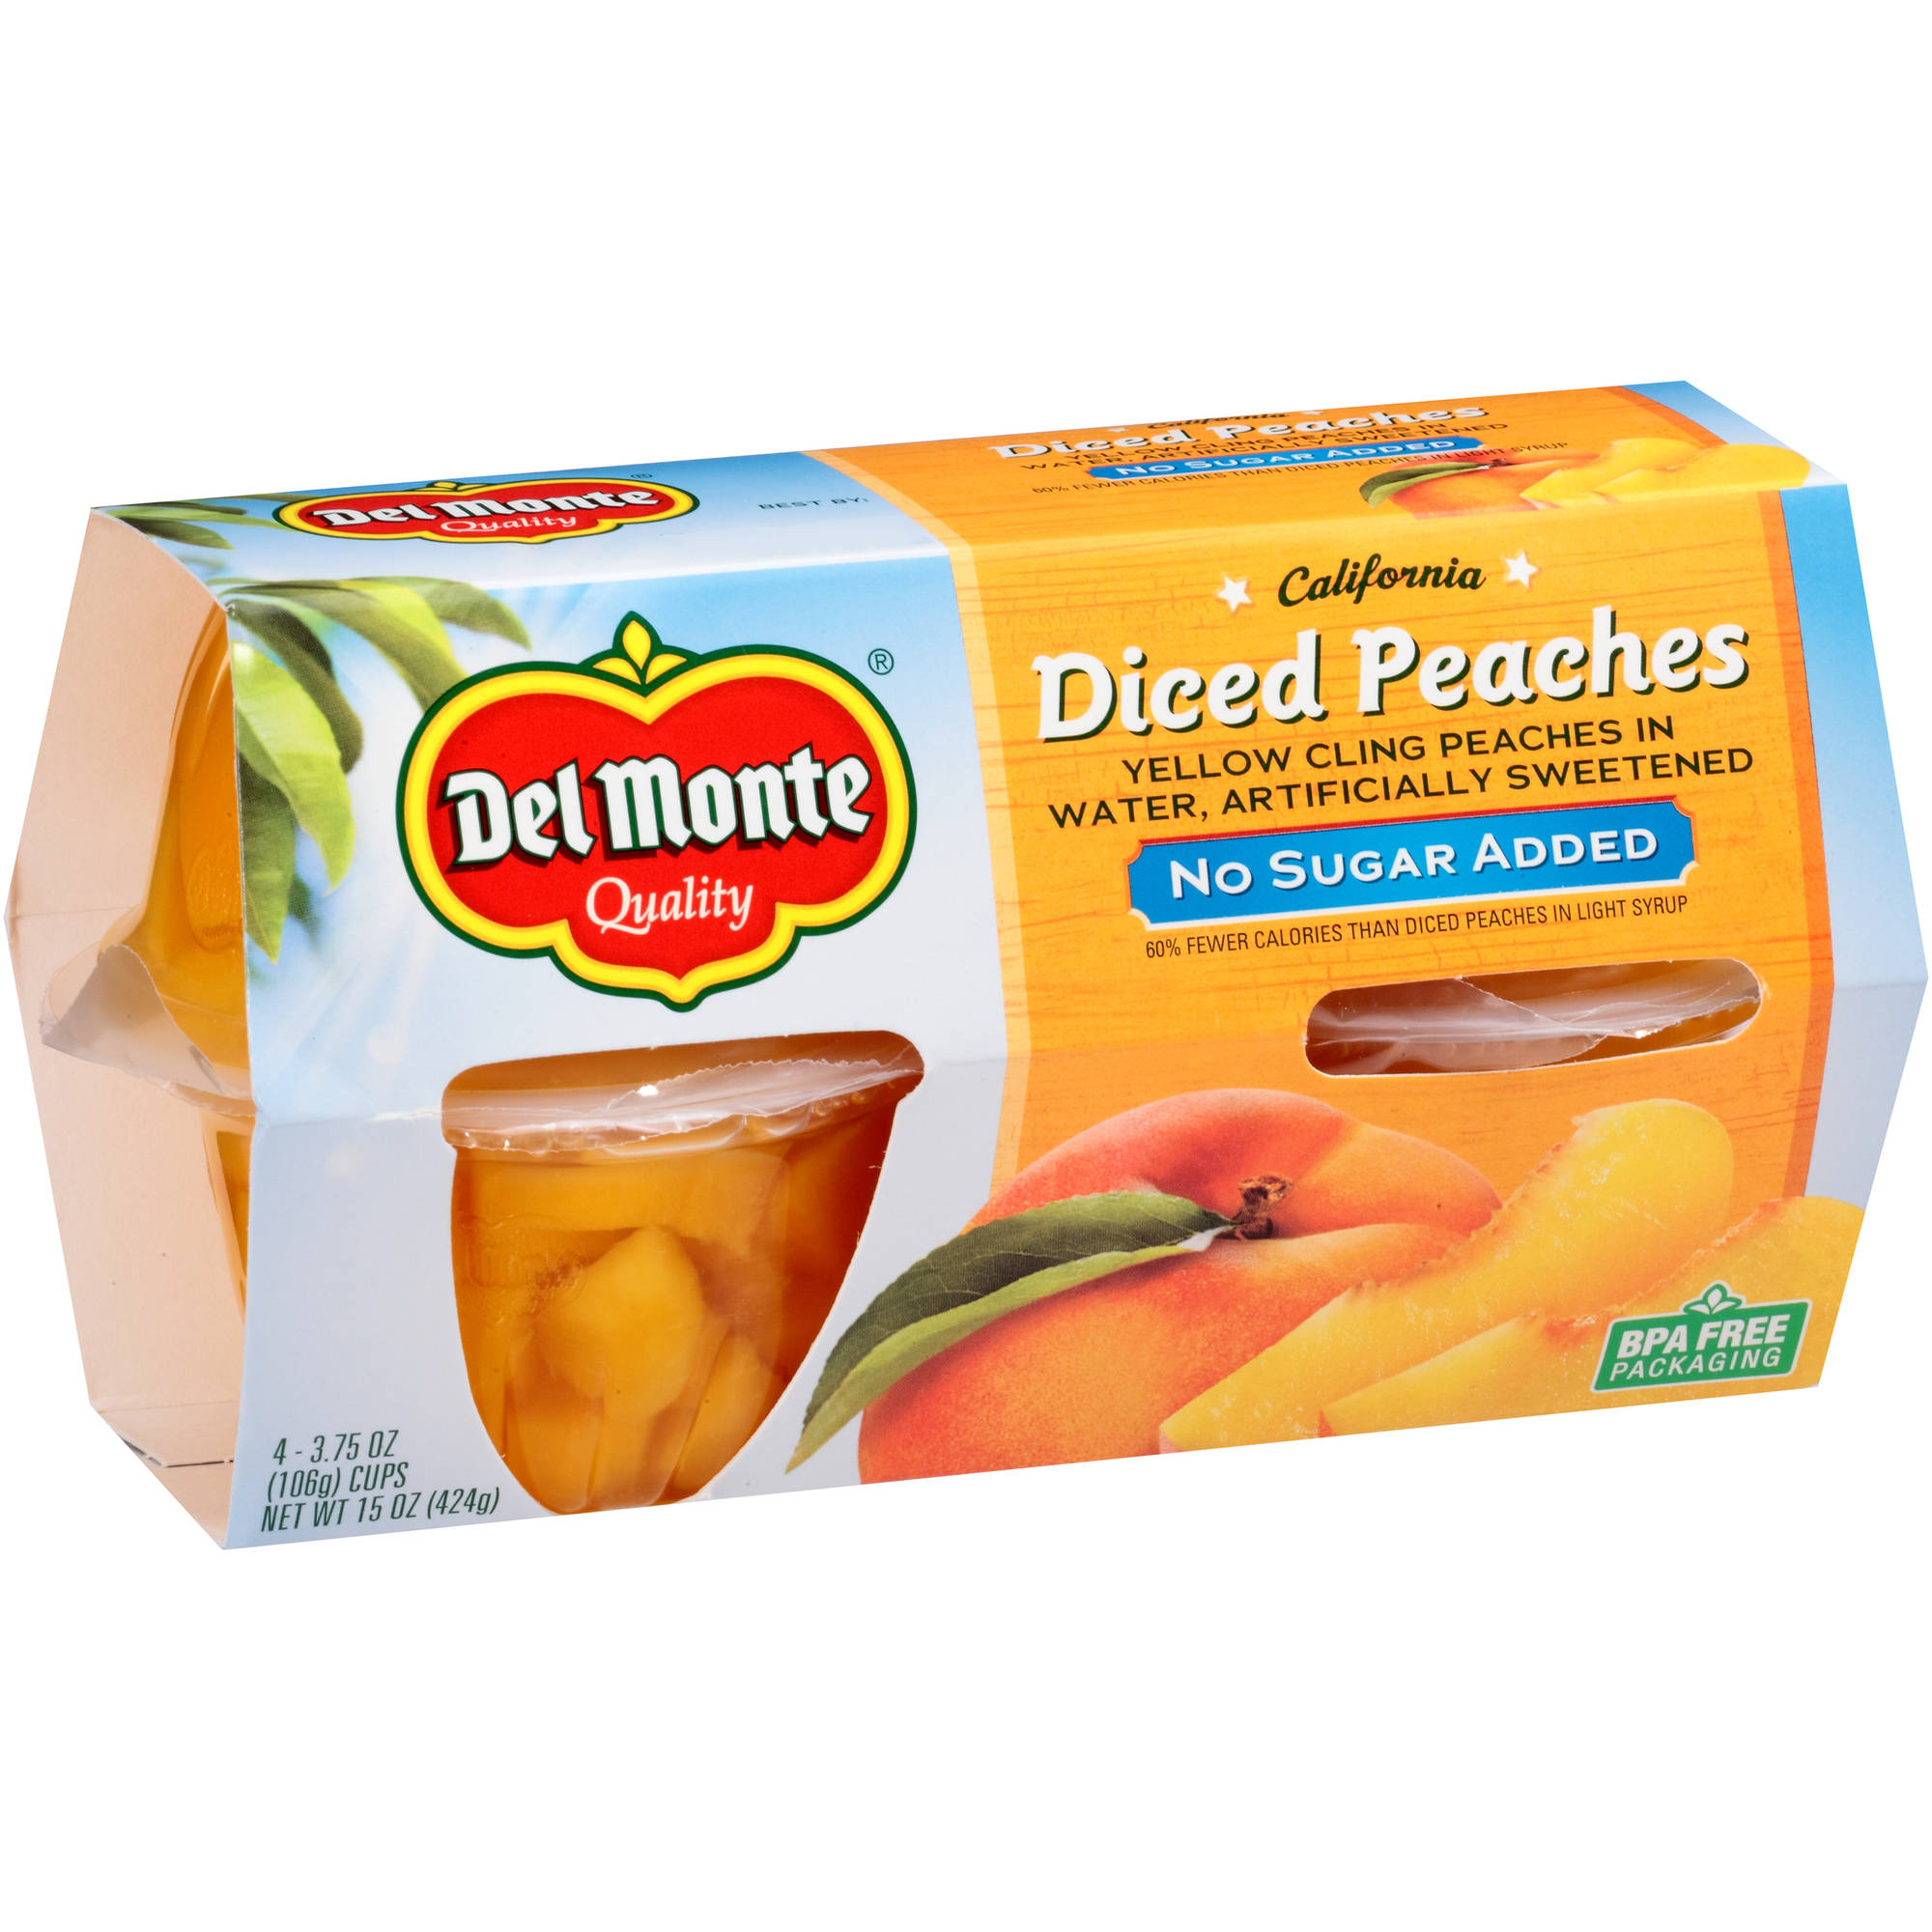 Del Monte No Sugar Added California Diced Peaches Yellow Cling Peaches in Water, 3.75 oz, 4 count